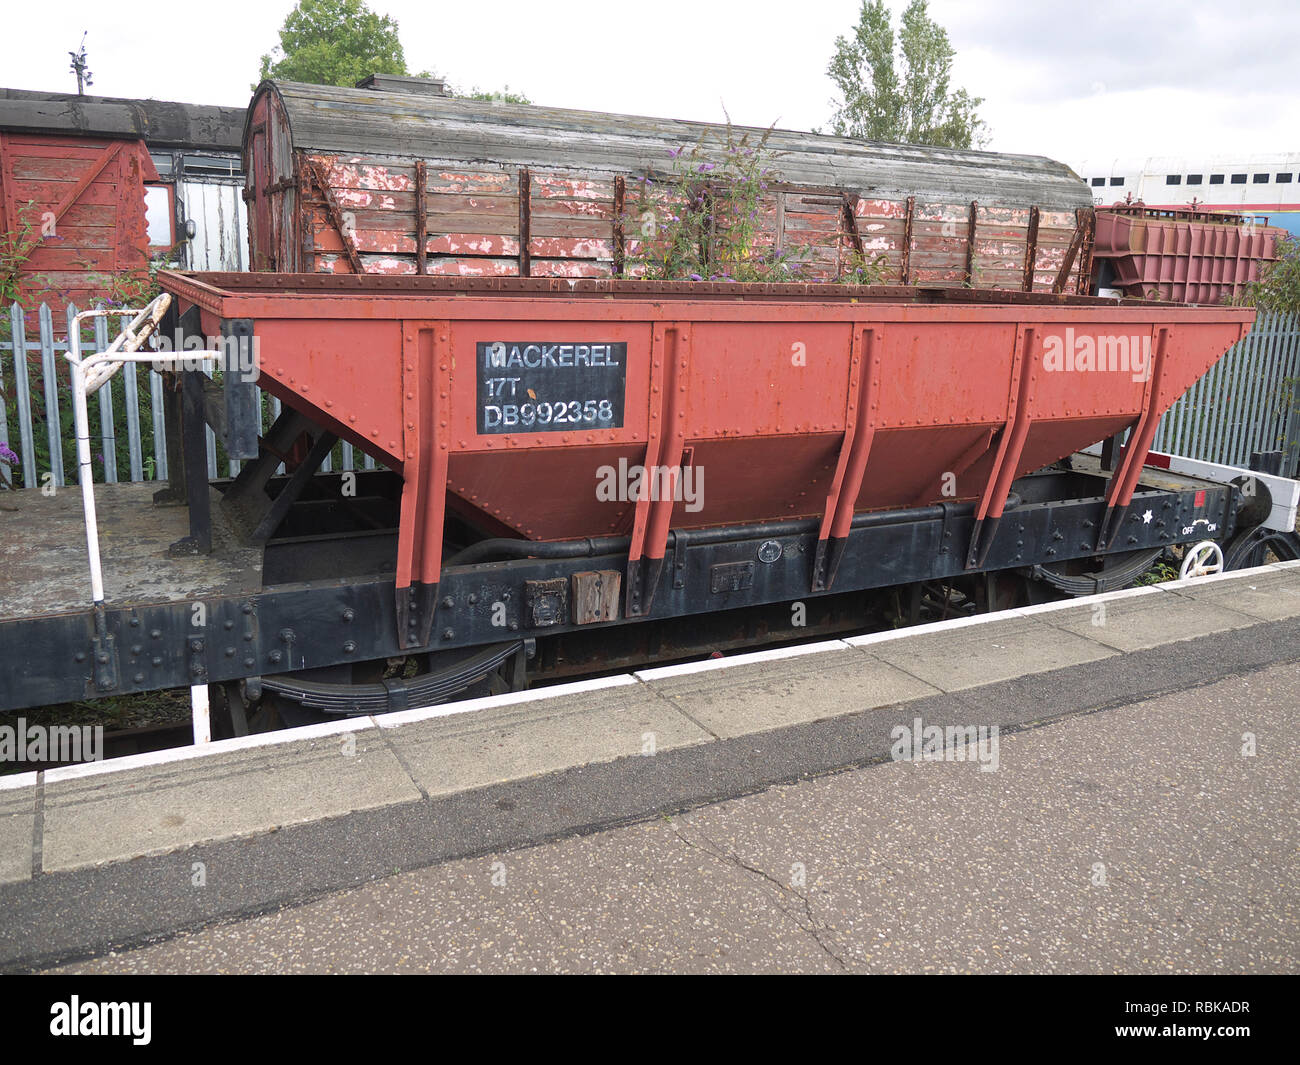 Goods wagon on display at Peterborough station on the Nene Valley Railway - Stock Image